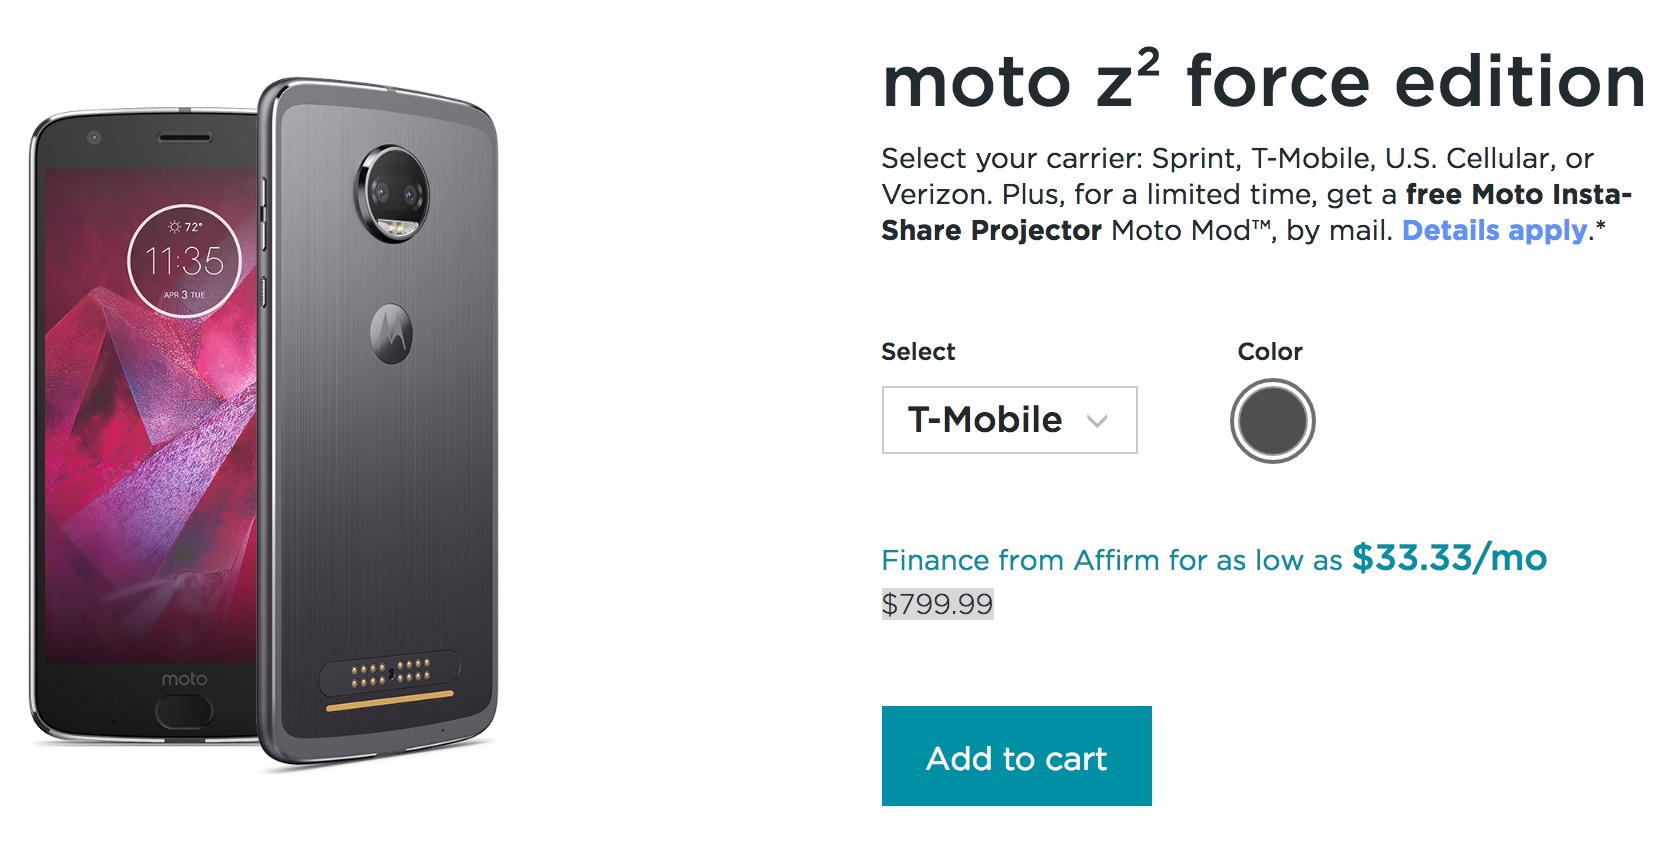 Moto Z2 Force Edition Specs, Price, And Release Date Officially Confirmed